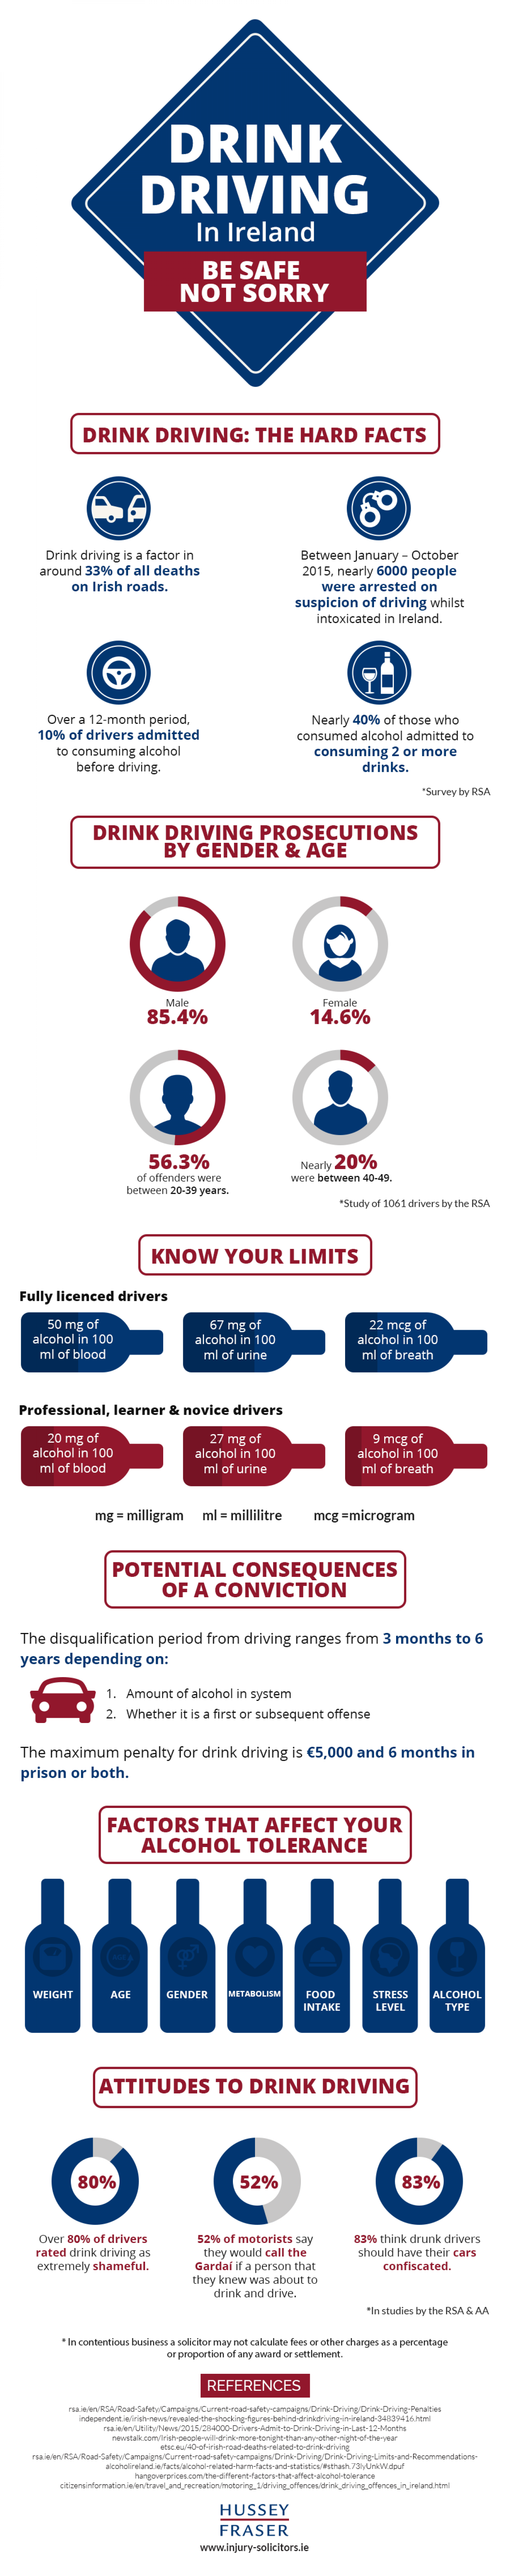 Drink Driving In Ireland : Be Safe Not Sorry Infographic